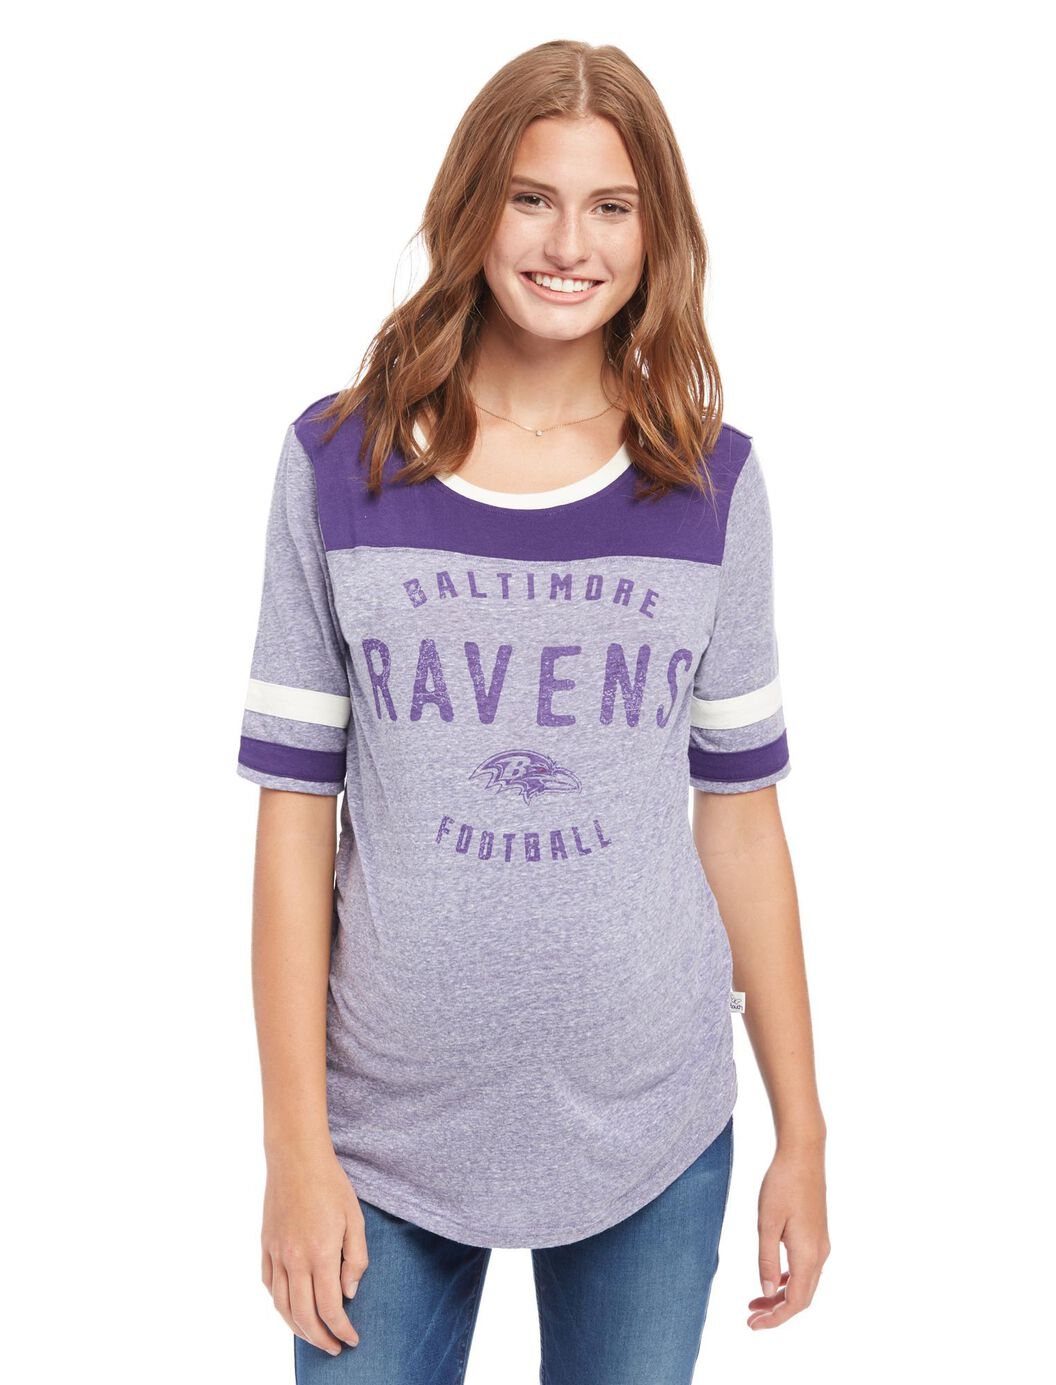 Baltimore Ravens NFL Elbow Sleeve Maternity Graphic Tee at Motherhood Maternity in Victor, NY | Tuggl